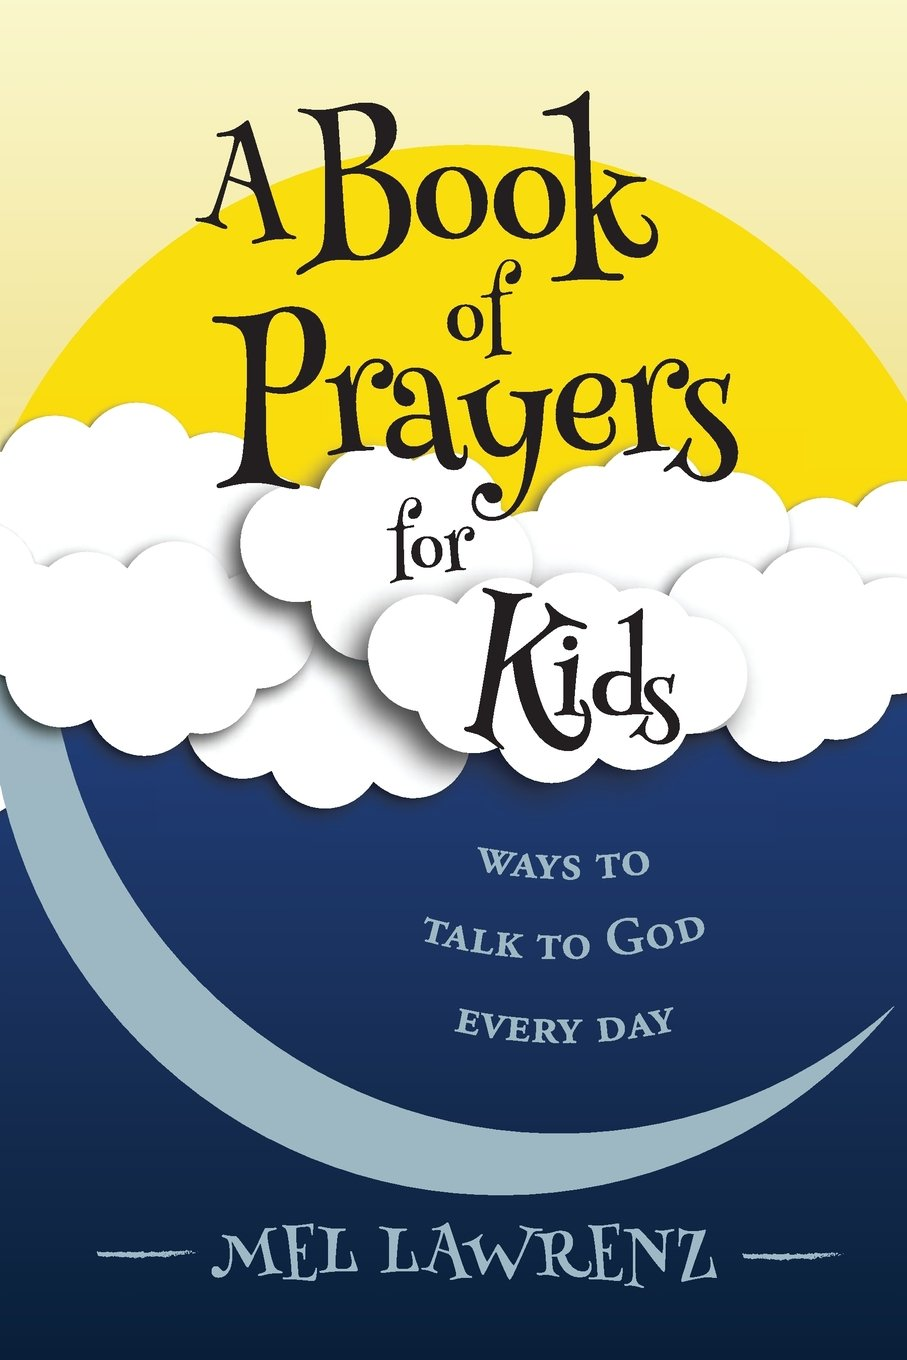 A Book of Prayers for Kids: ways to talk to God every day: Mel Lawrenz:  9780997406337: Amazon.com: Books